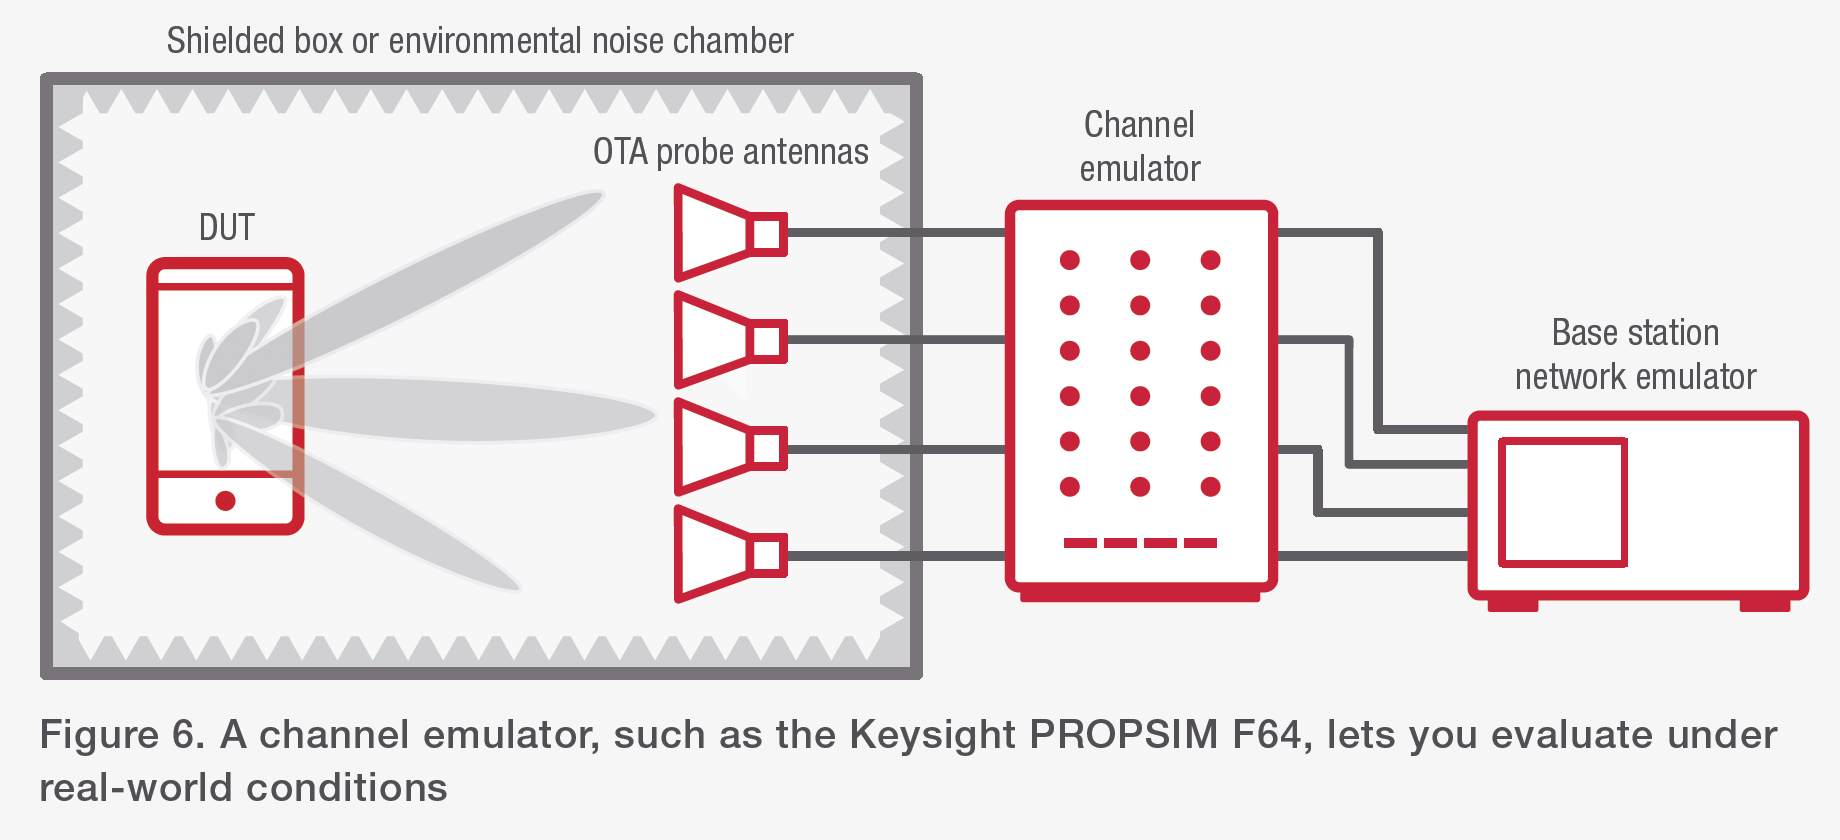 Figure 6. A channel emulator, such as the Keysight PROPSIM F64, lets you evaluate under real-world conditions